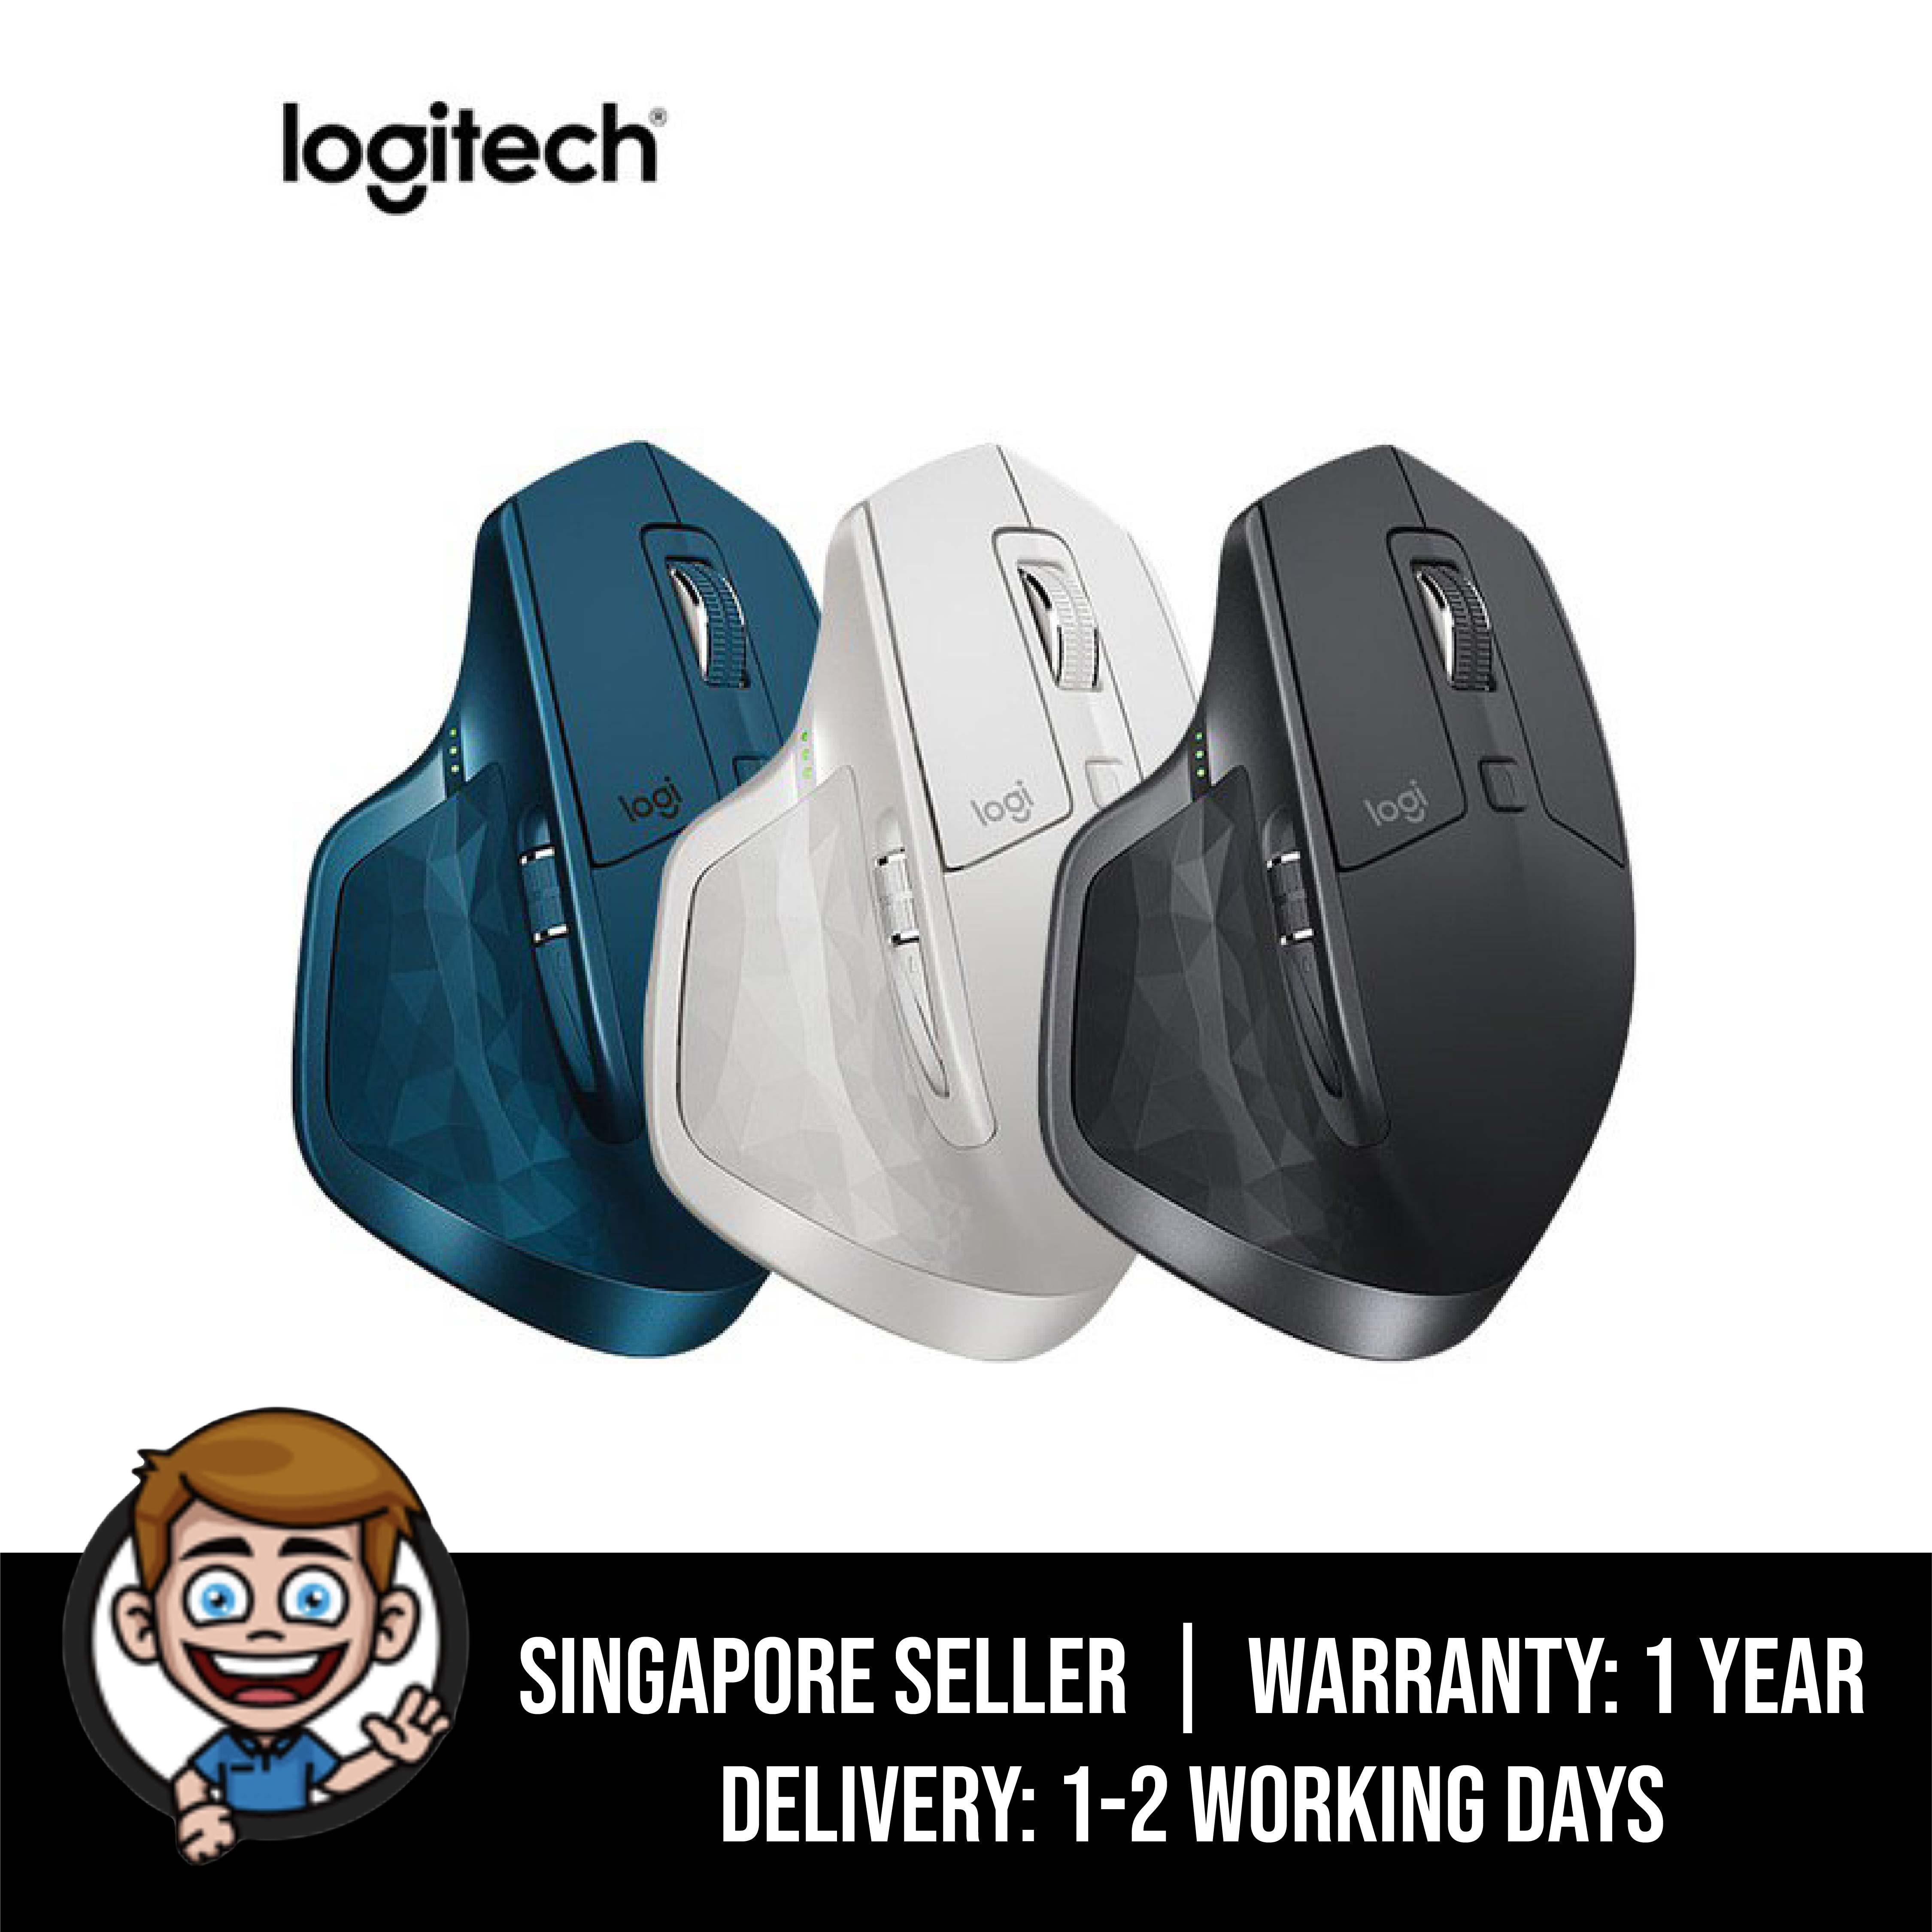 Logitech MX Master 2S Wireless Mouse – Use on Any Surface, Hyper-Fast Scrolling, Ergonomic Shape, Rechargeable, Control up to 3 Apple Mac and Windows Computers (Bluetooth or USB)